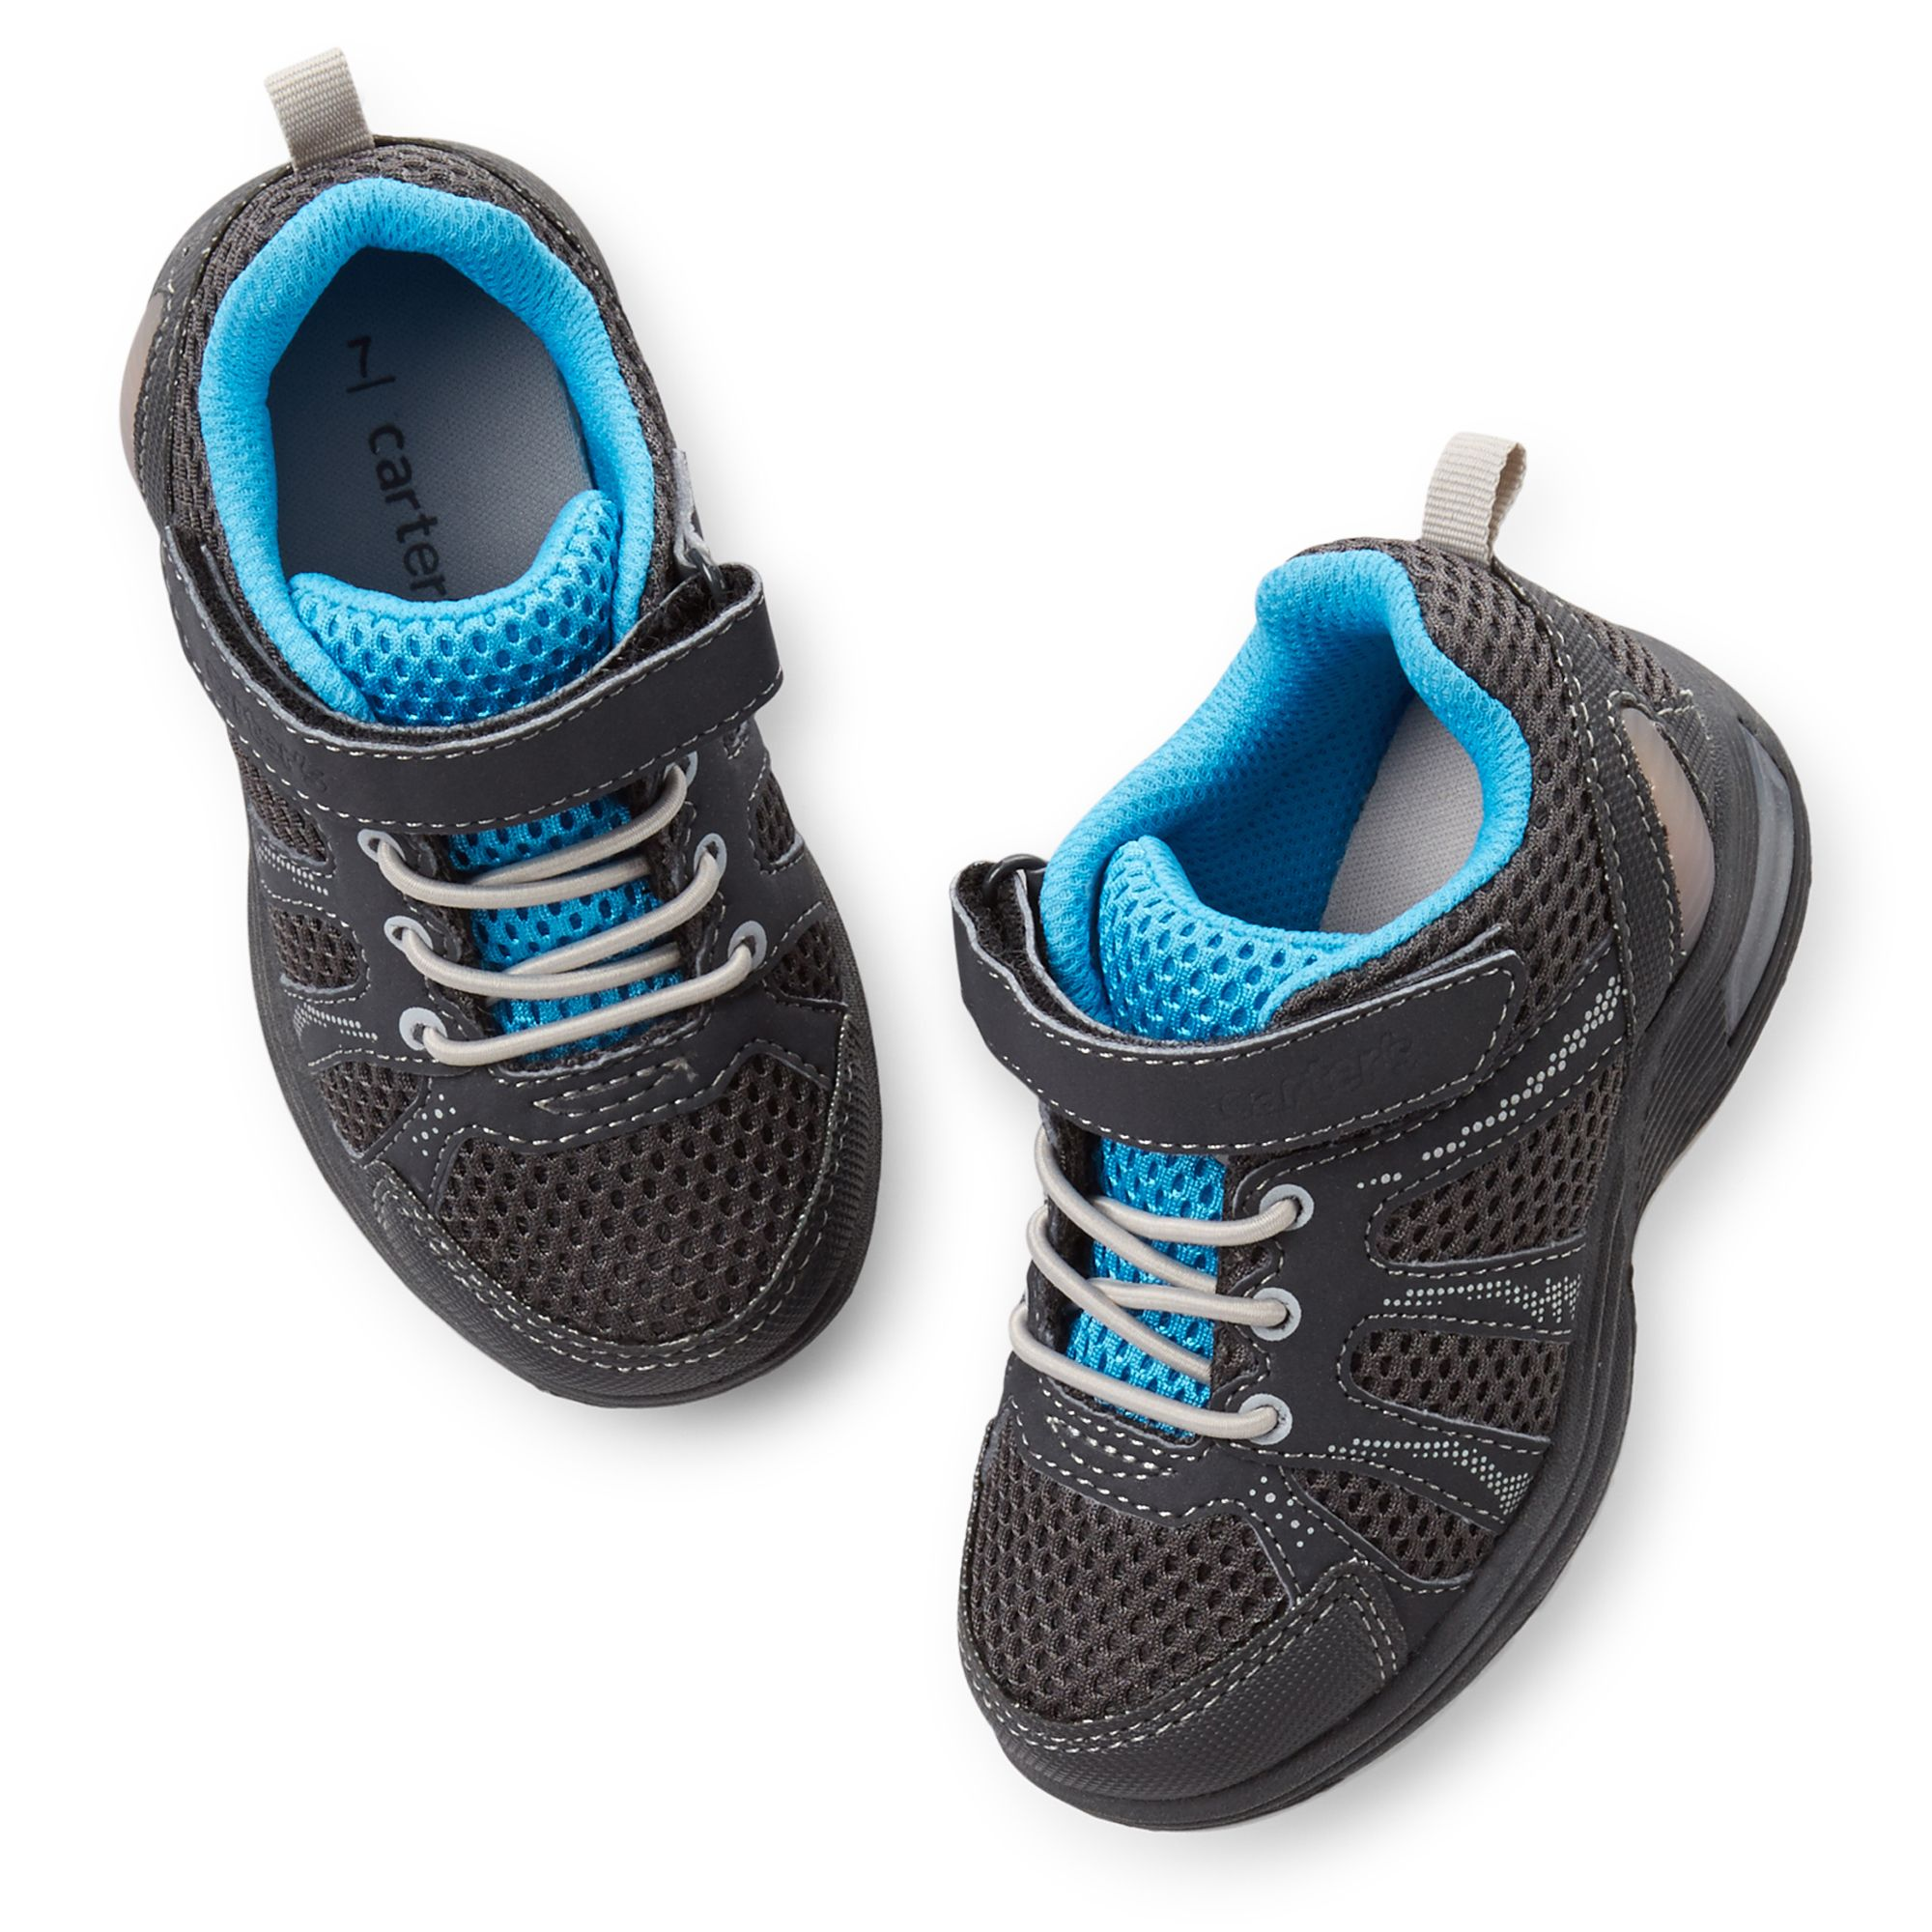 Carter's Boys Light Up Athletic Sneakers: On or off the ...